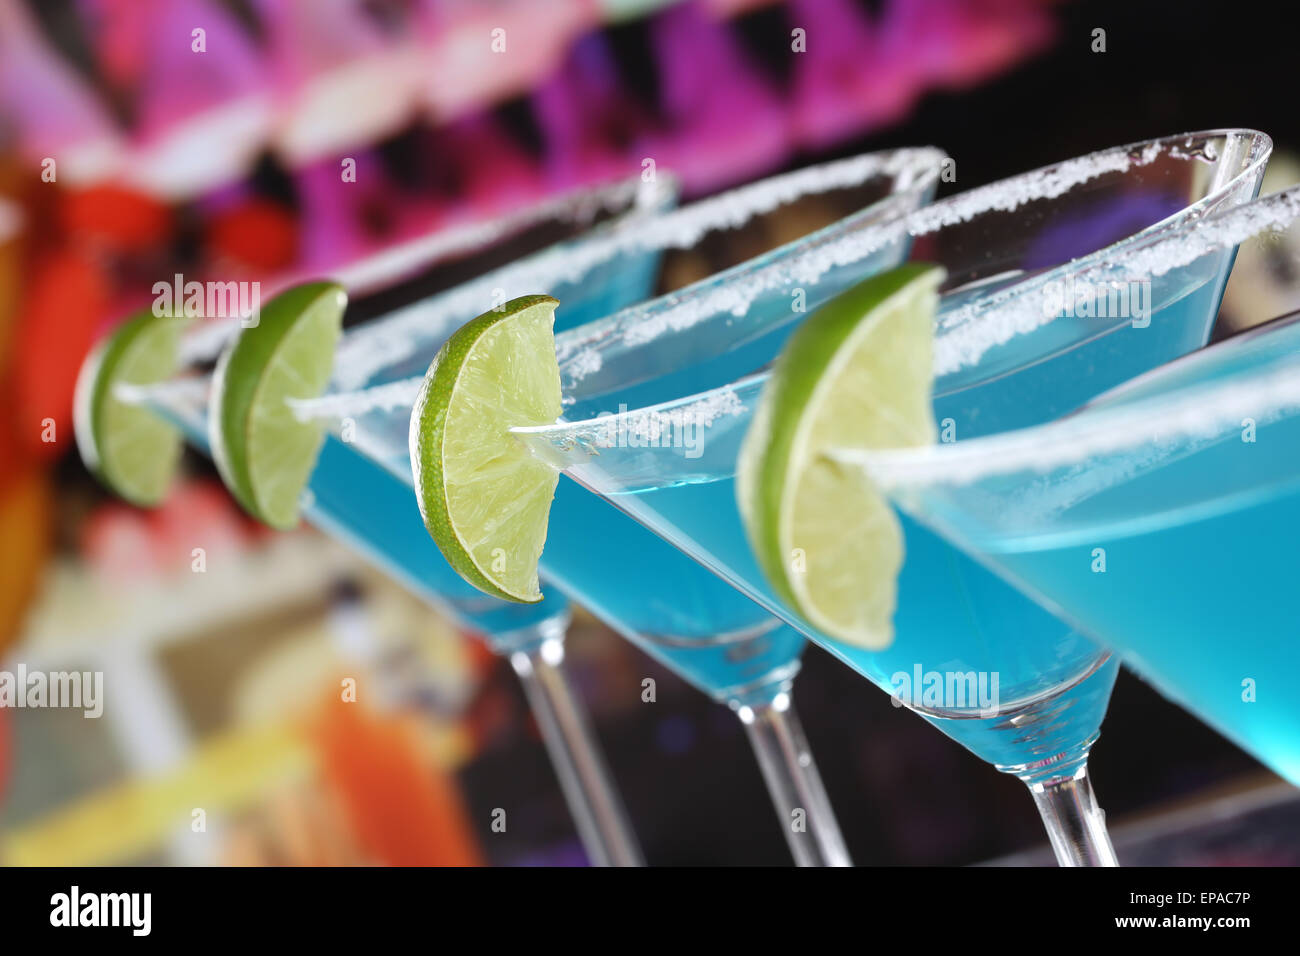 Blue Curacao Cocktails in Martini Gläsern in einer Bar - Stock Image